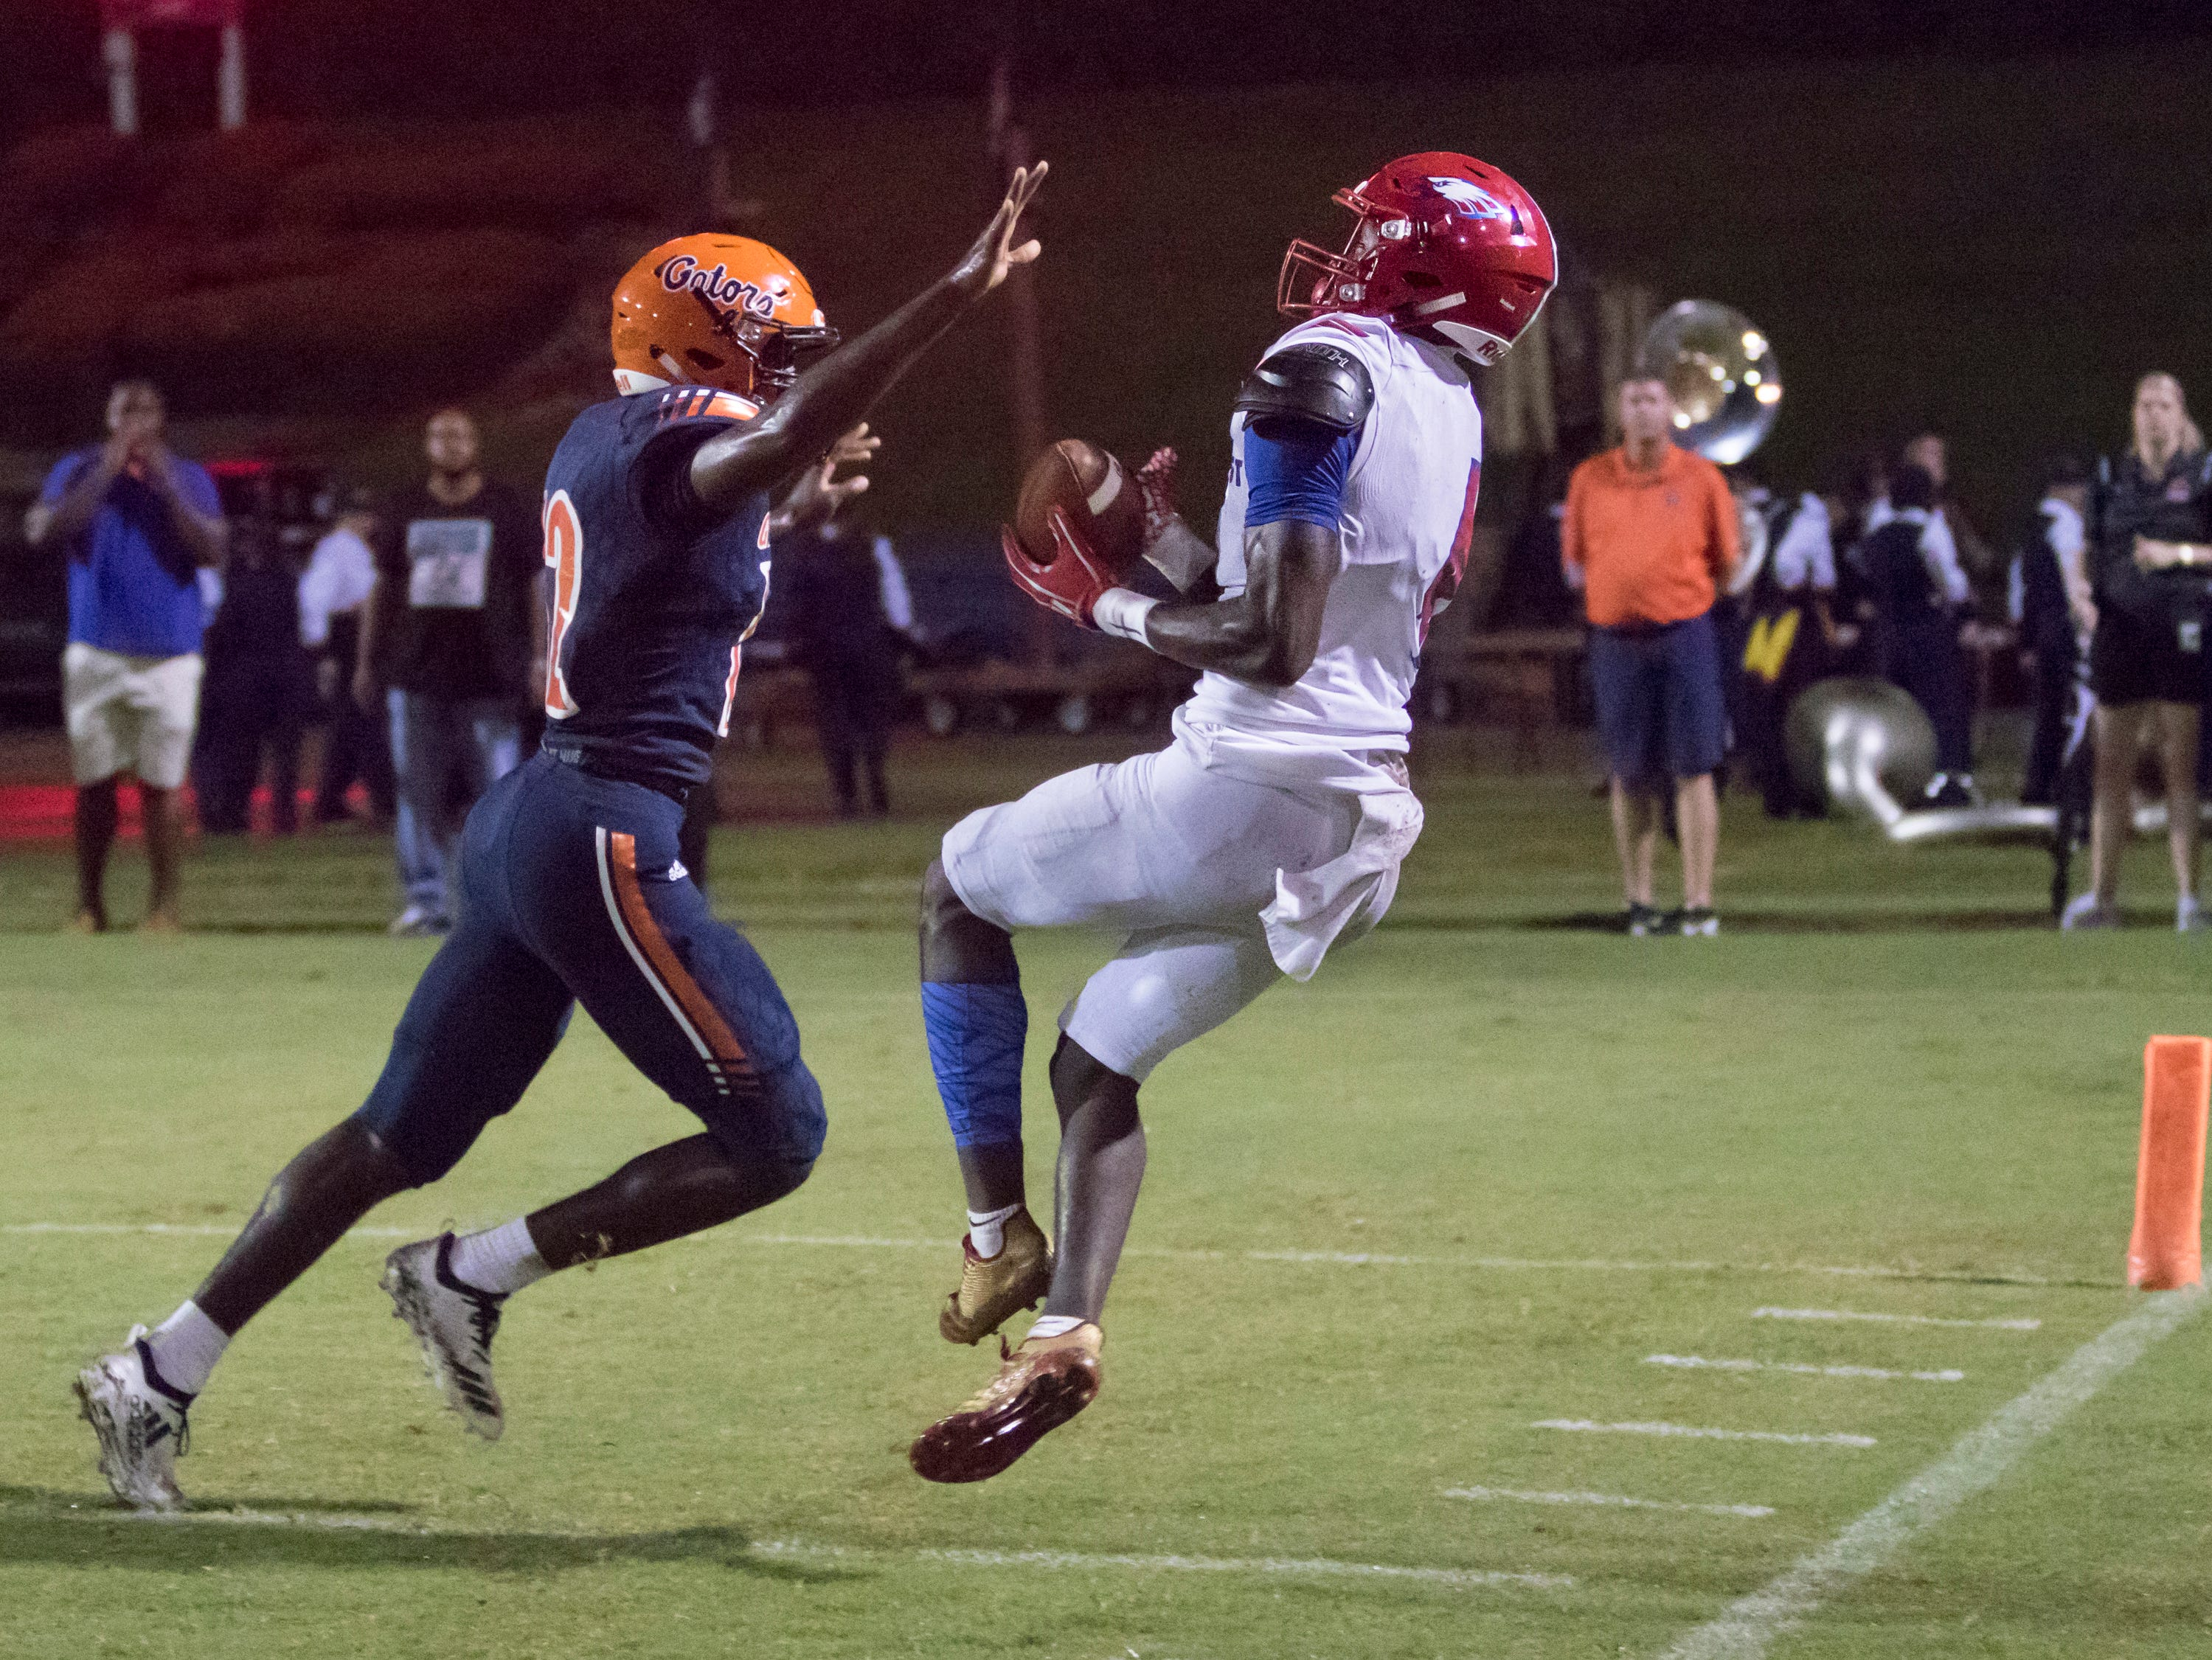 Vontarious Hill (4) hauls in a pass along the sideline during the Pine Forest vs Escambia football game at Escambia High School in Pensacola on Friday, September 28, 2018.